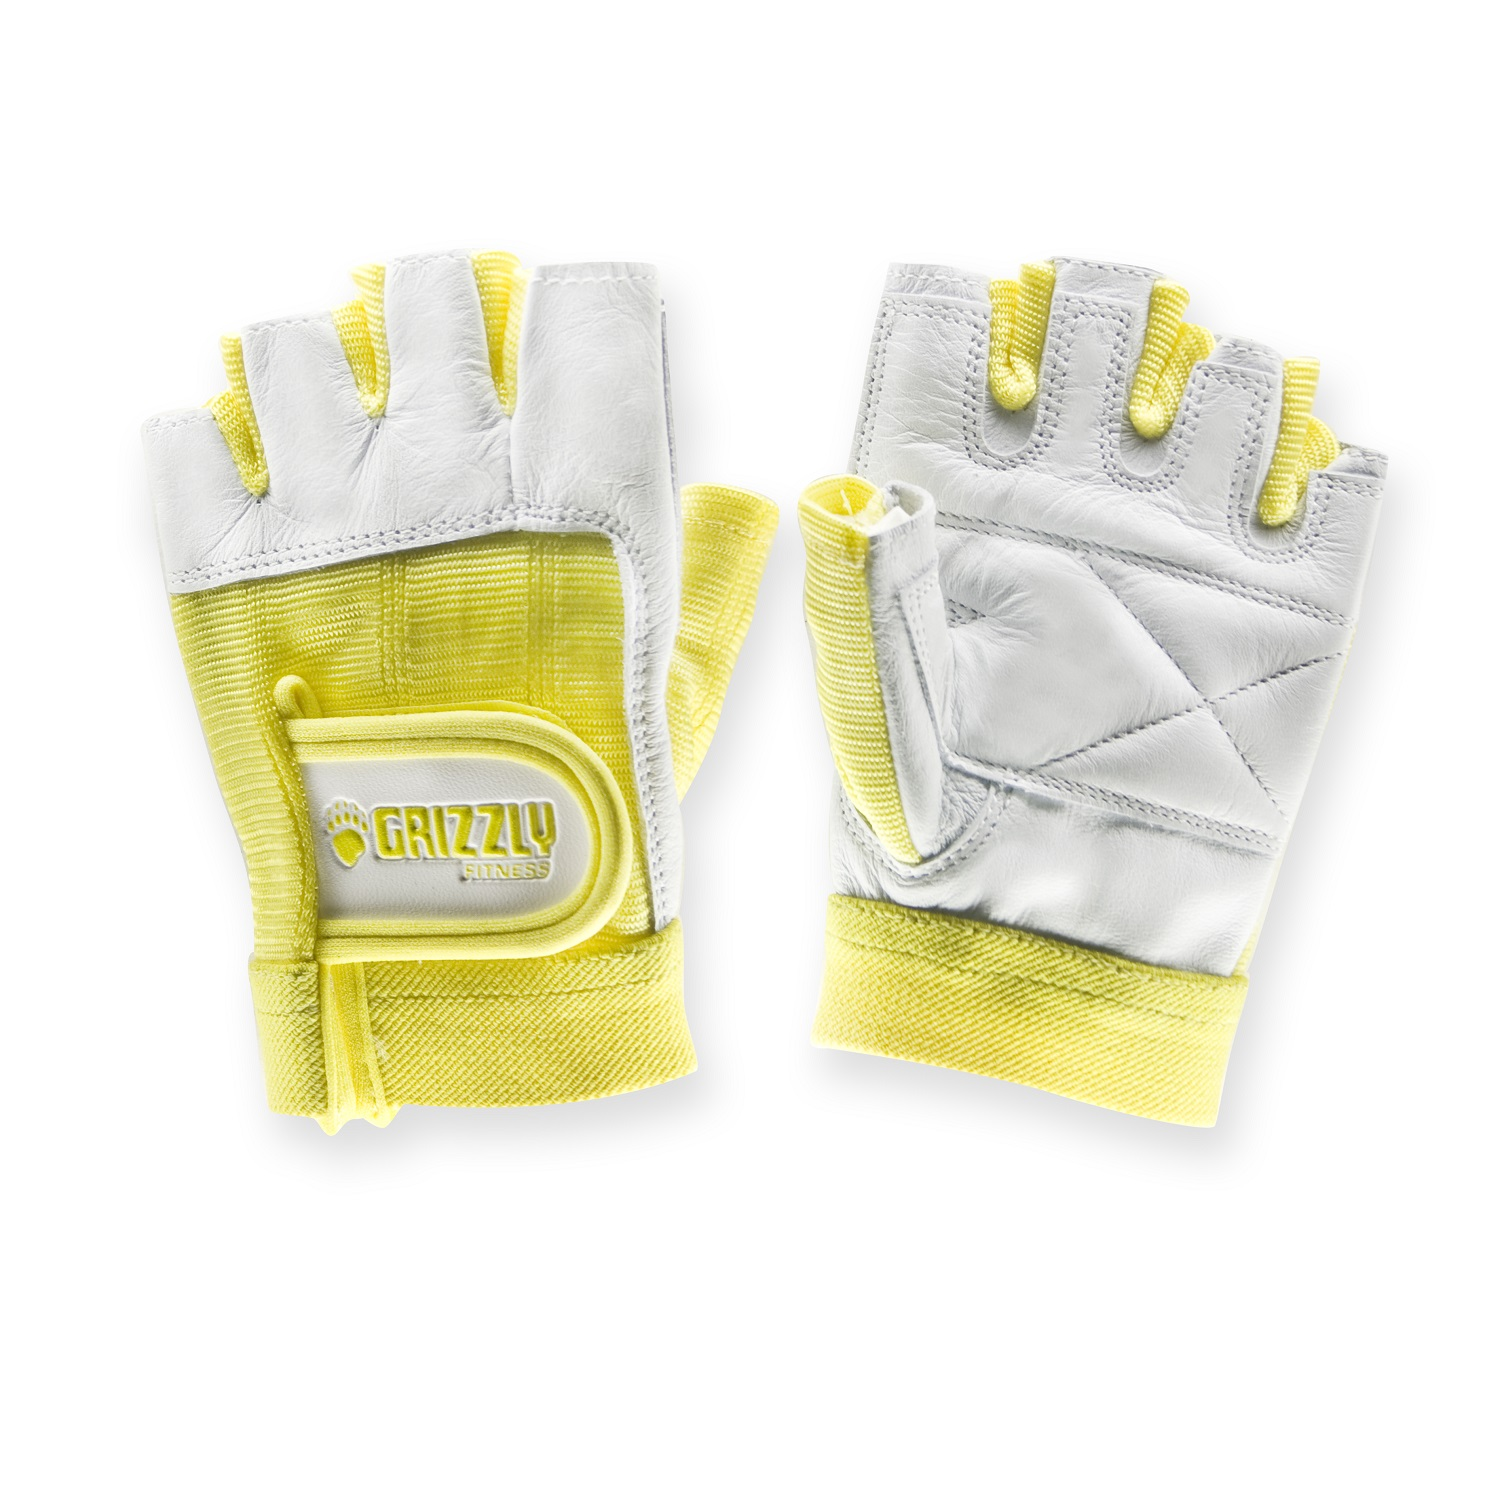 Womens Yellow Grizzly Paw Gloves - XS